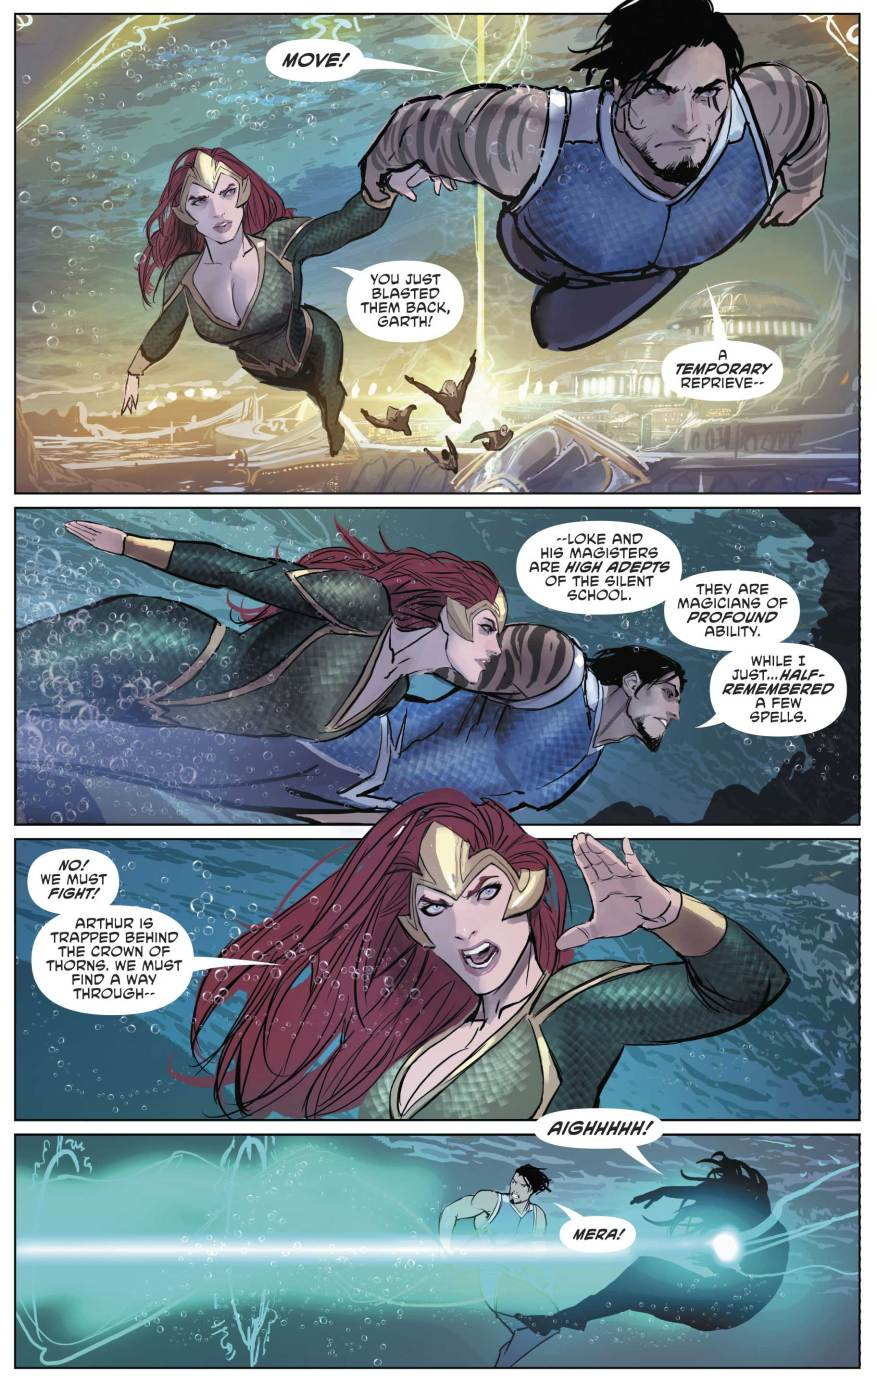 Mera And Tempest VS The Silent School